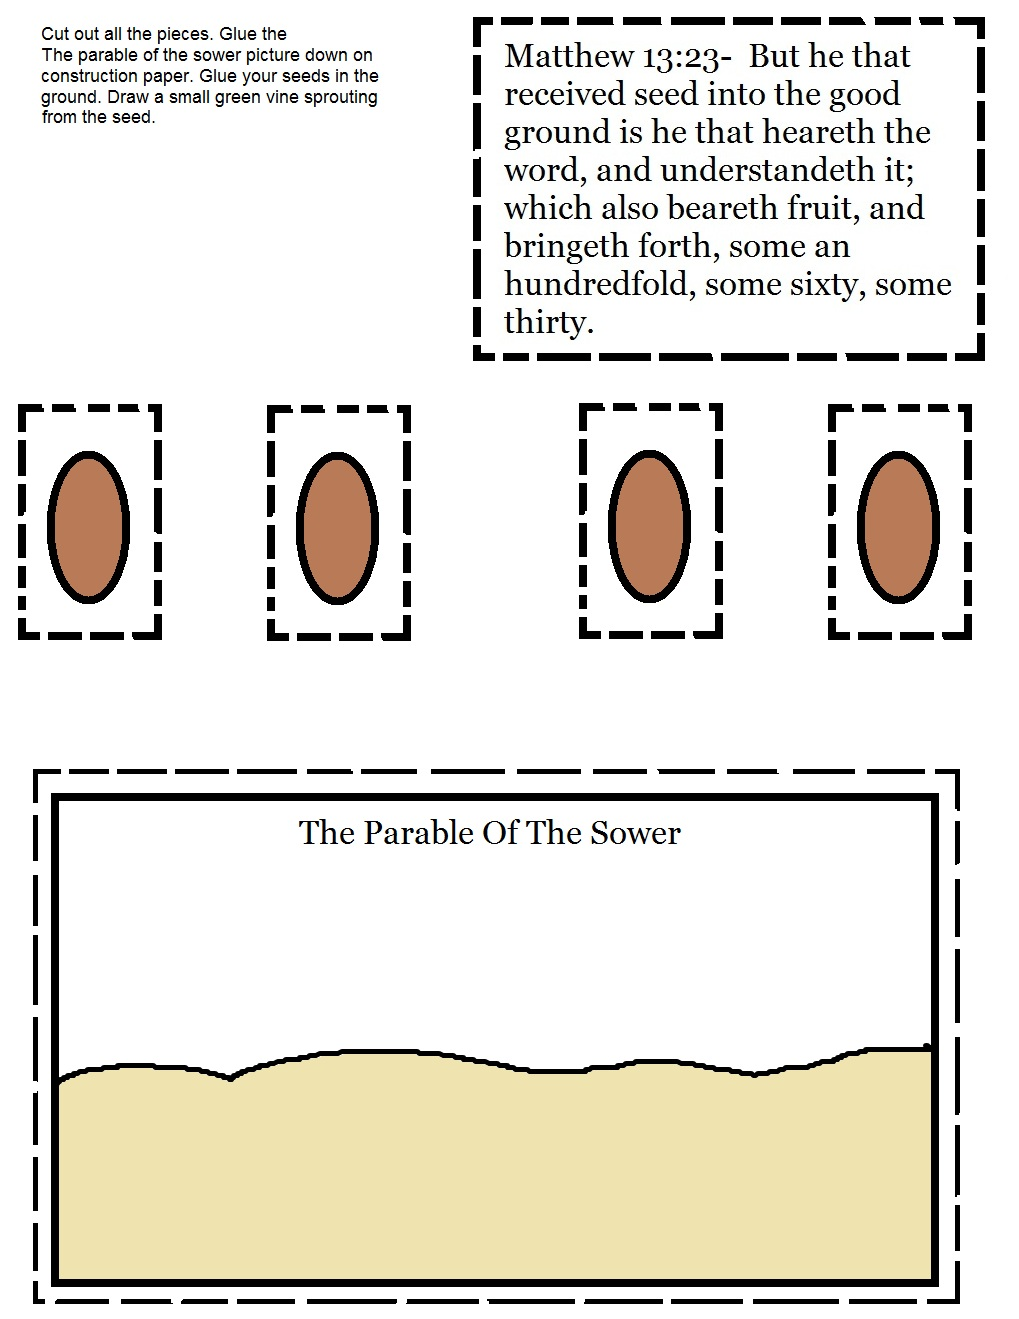 Parable of the sower research paper